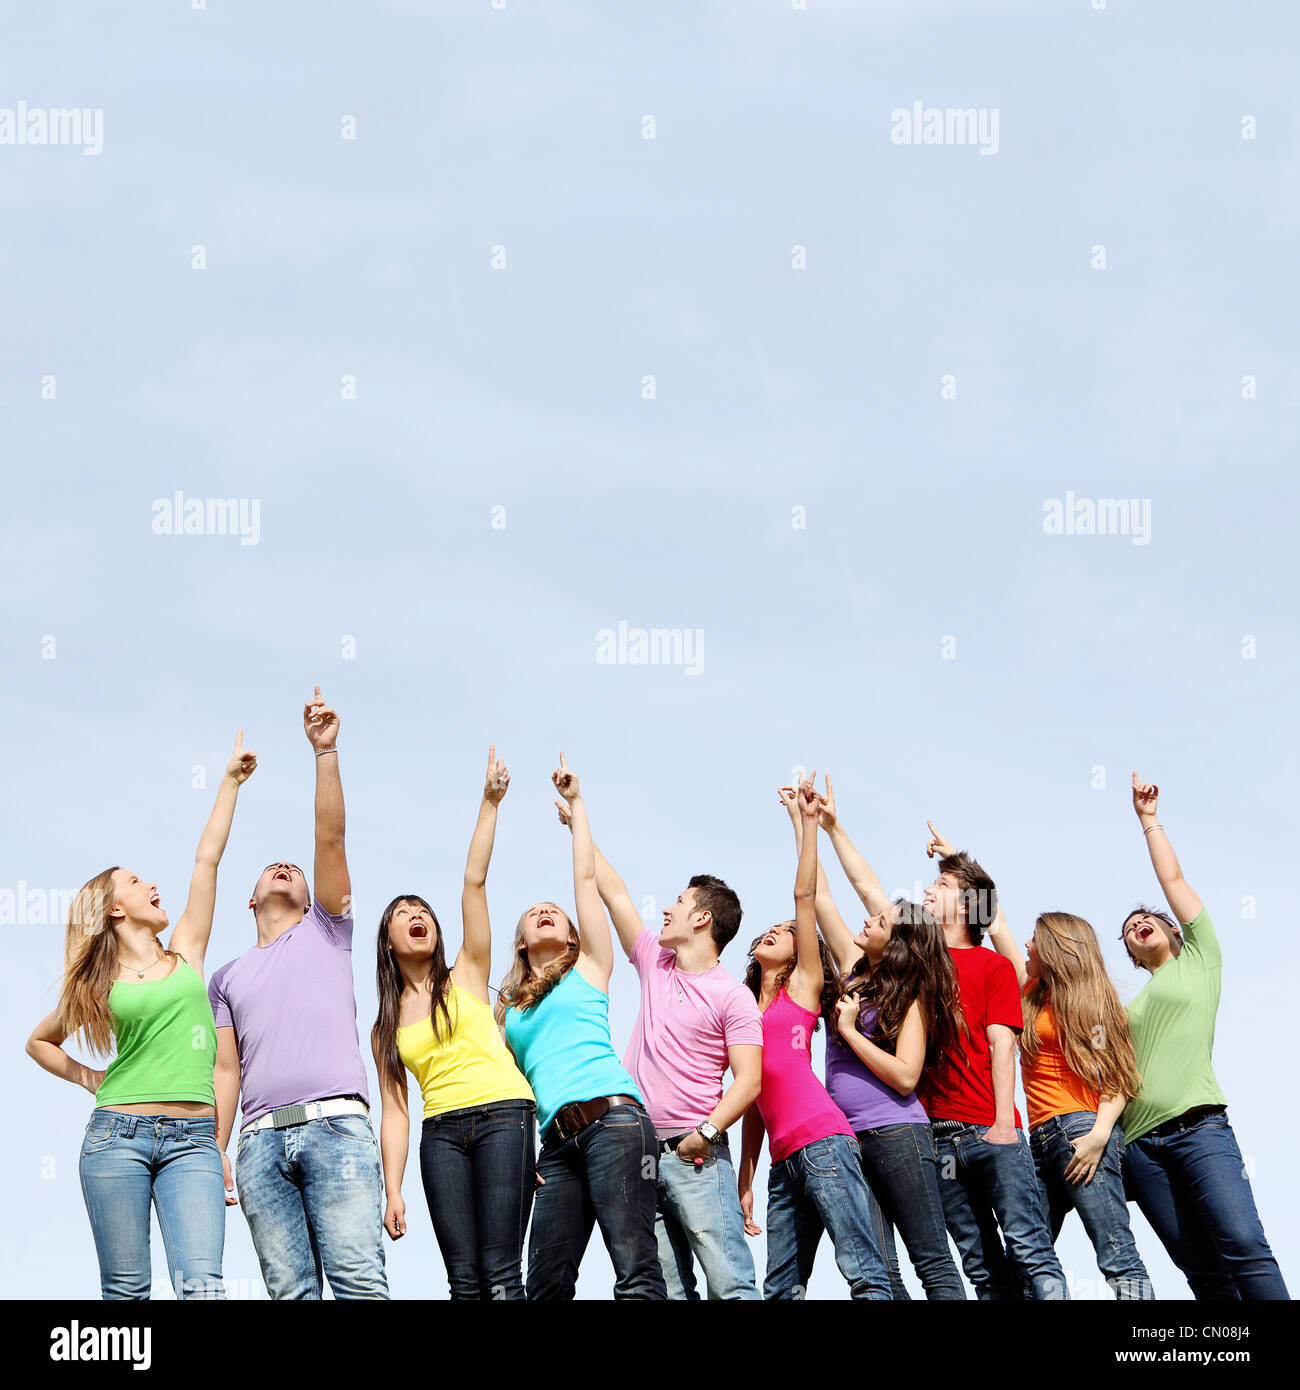 Group of teens pointing - Stock Image